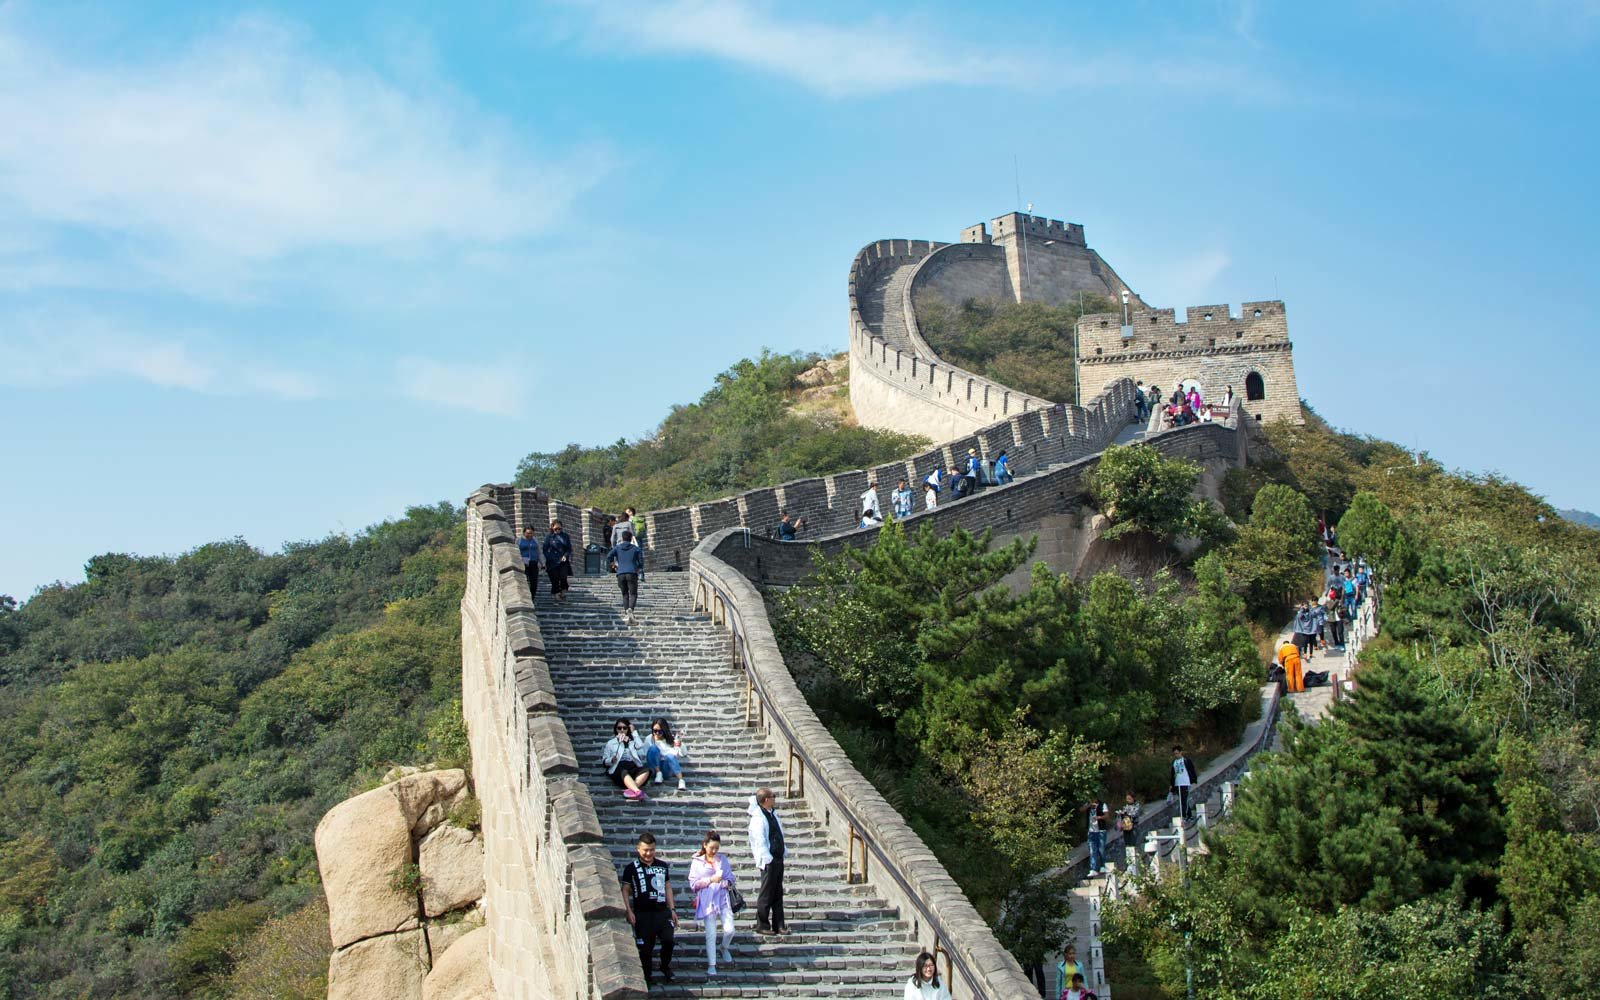 Where is the Great Wall of China?